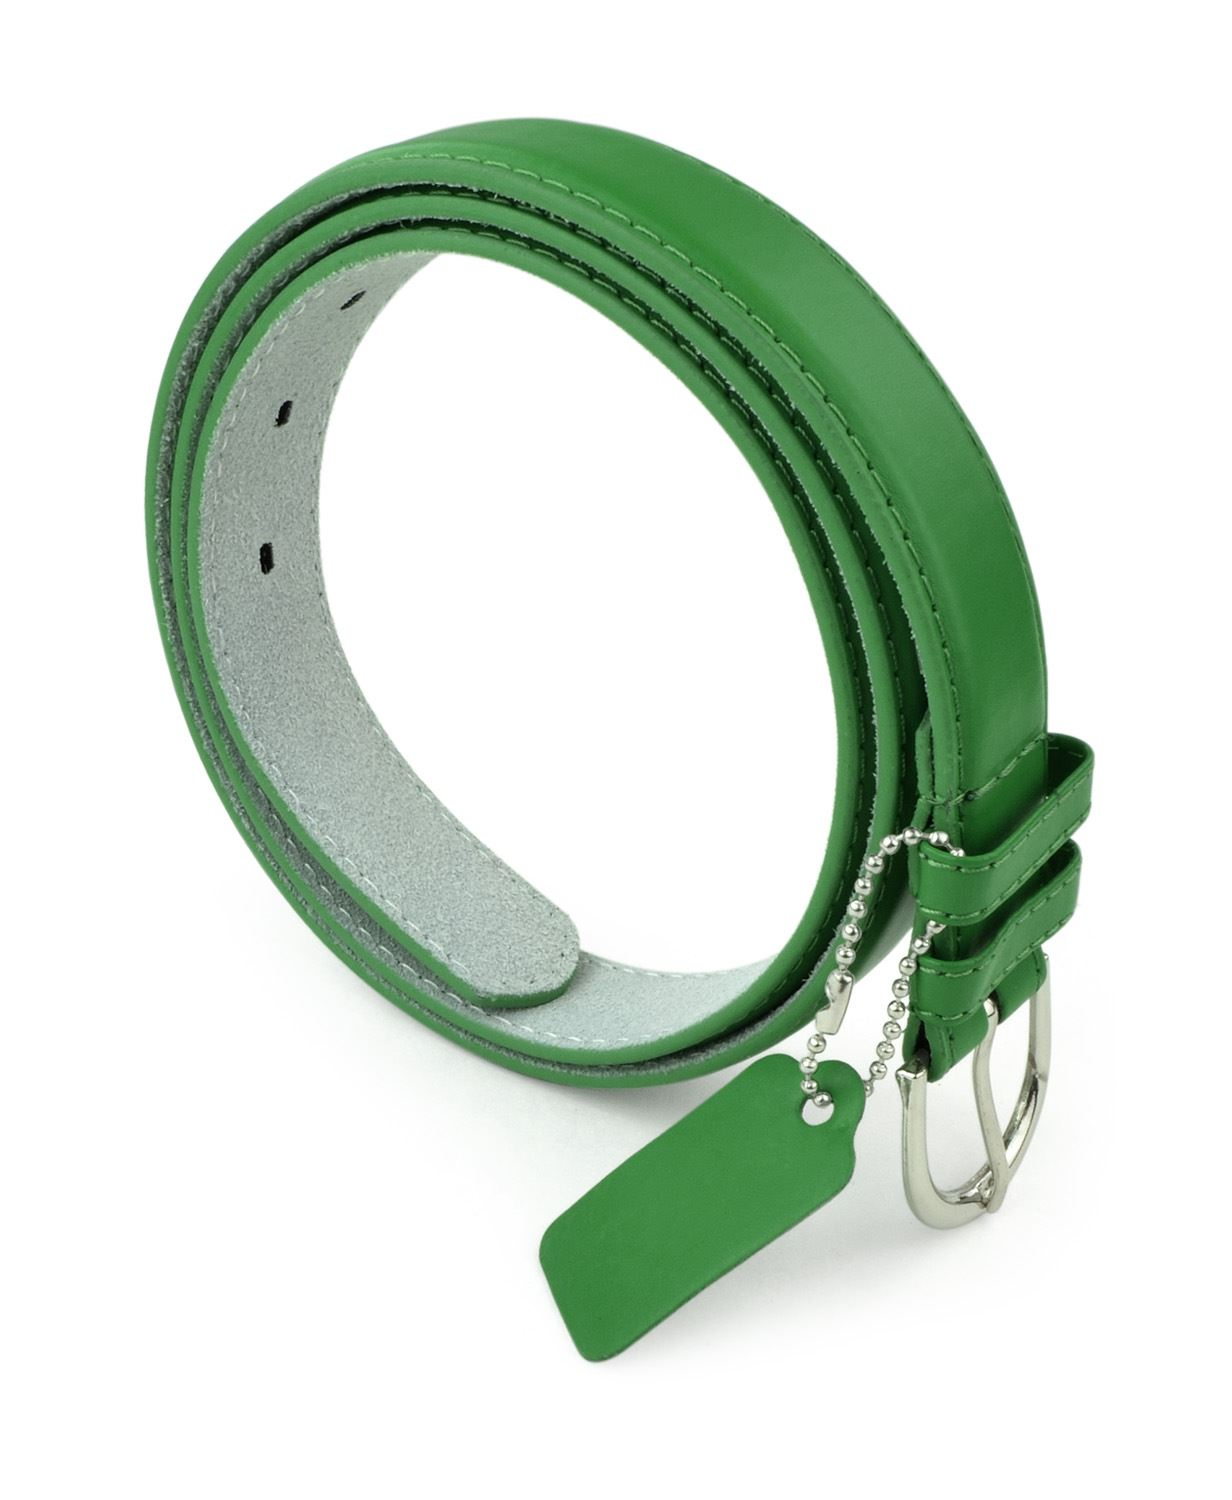 Womens Chic Dress Belt Bonded Leather Polished Buckle - KellyGreen Small